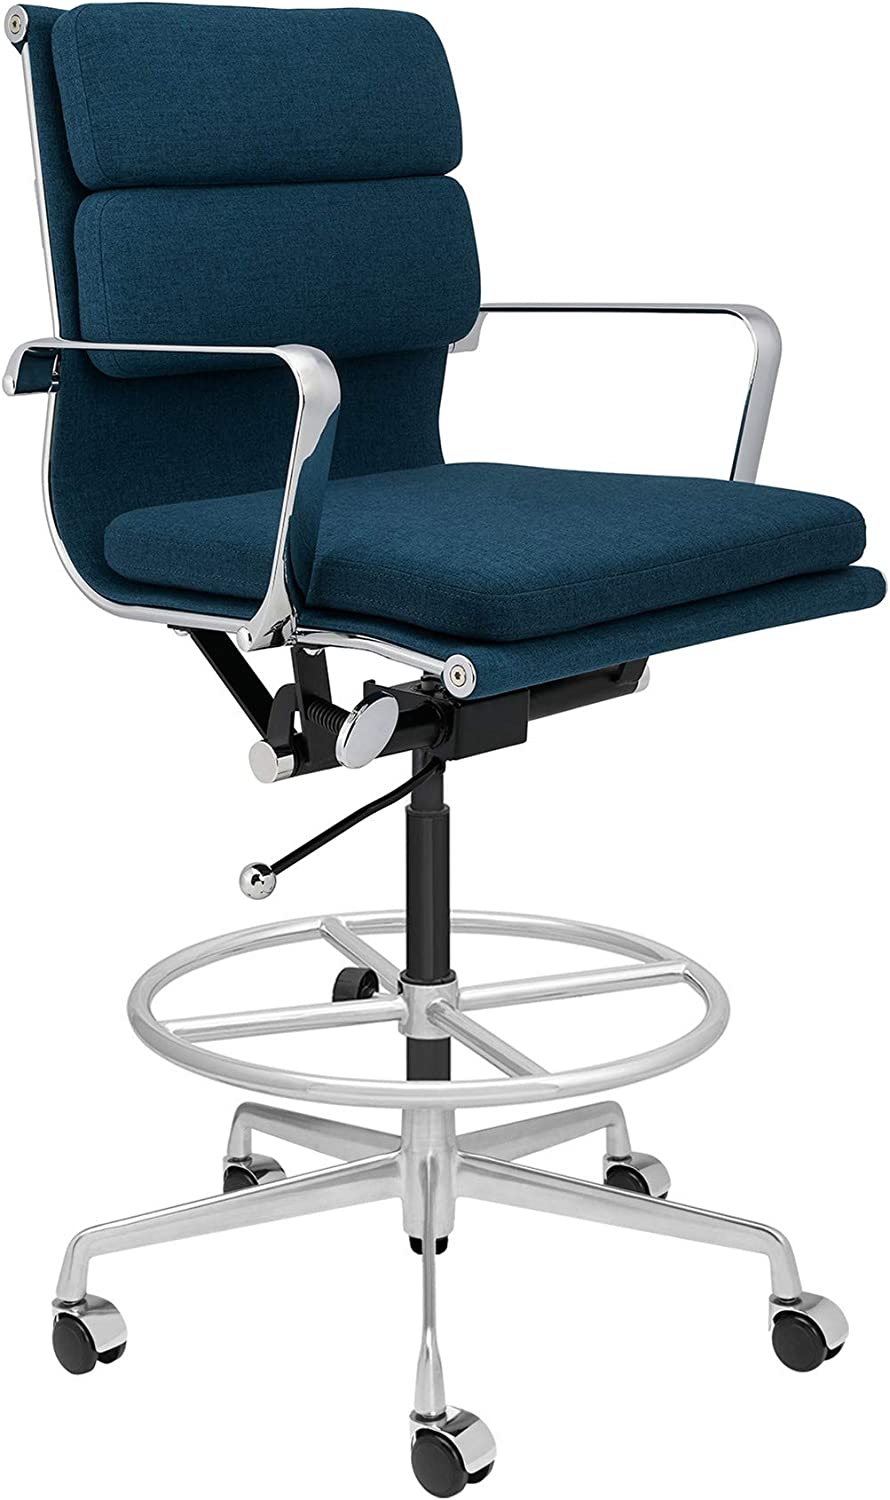 SOHO Soft Pad Drafting Chair - Ergonomically Designed and Commercial Grade Draft Height for Standing Desks (Dark Blue Fabric)